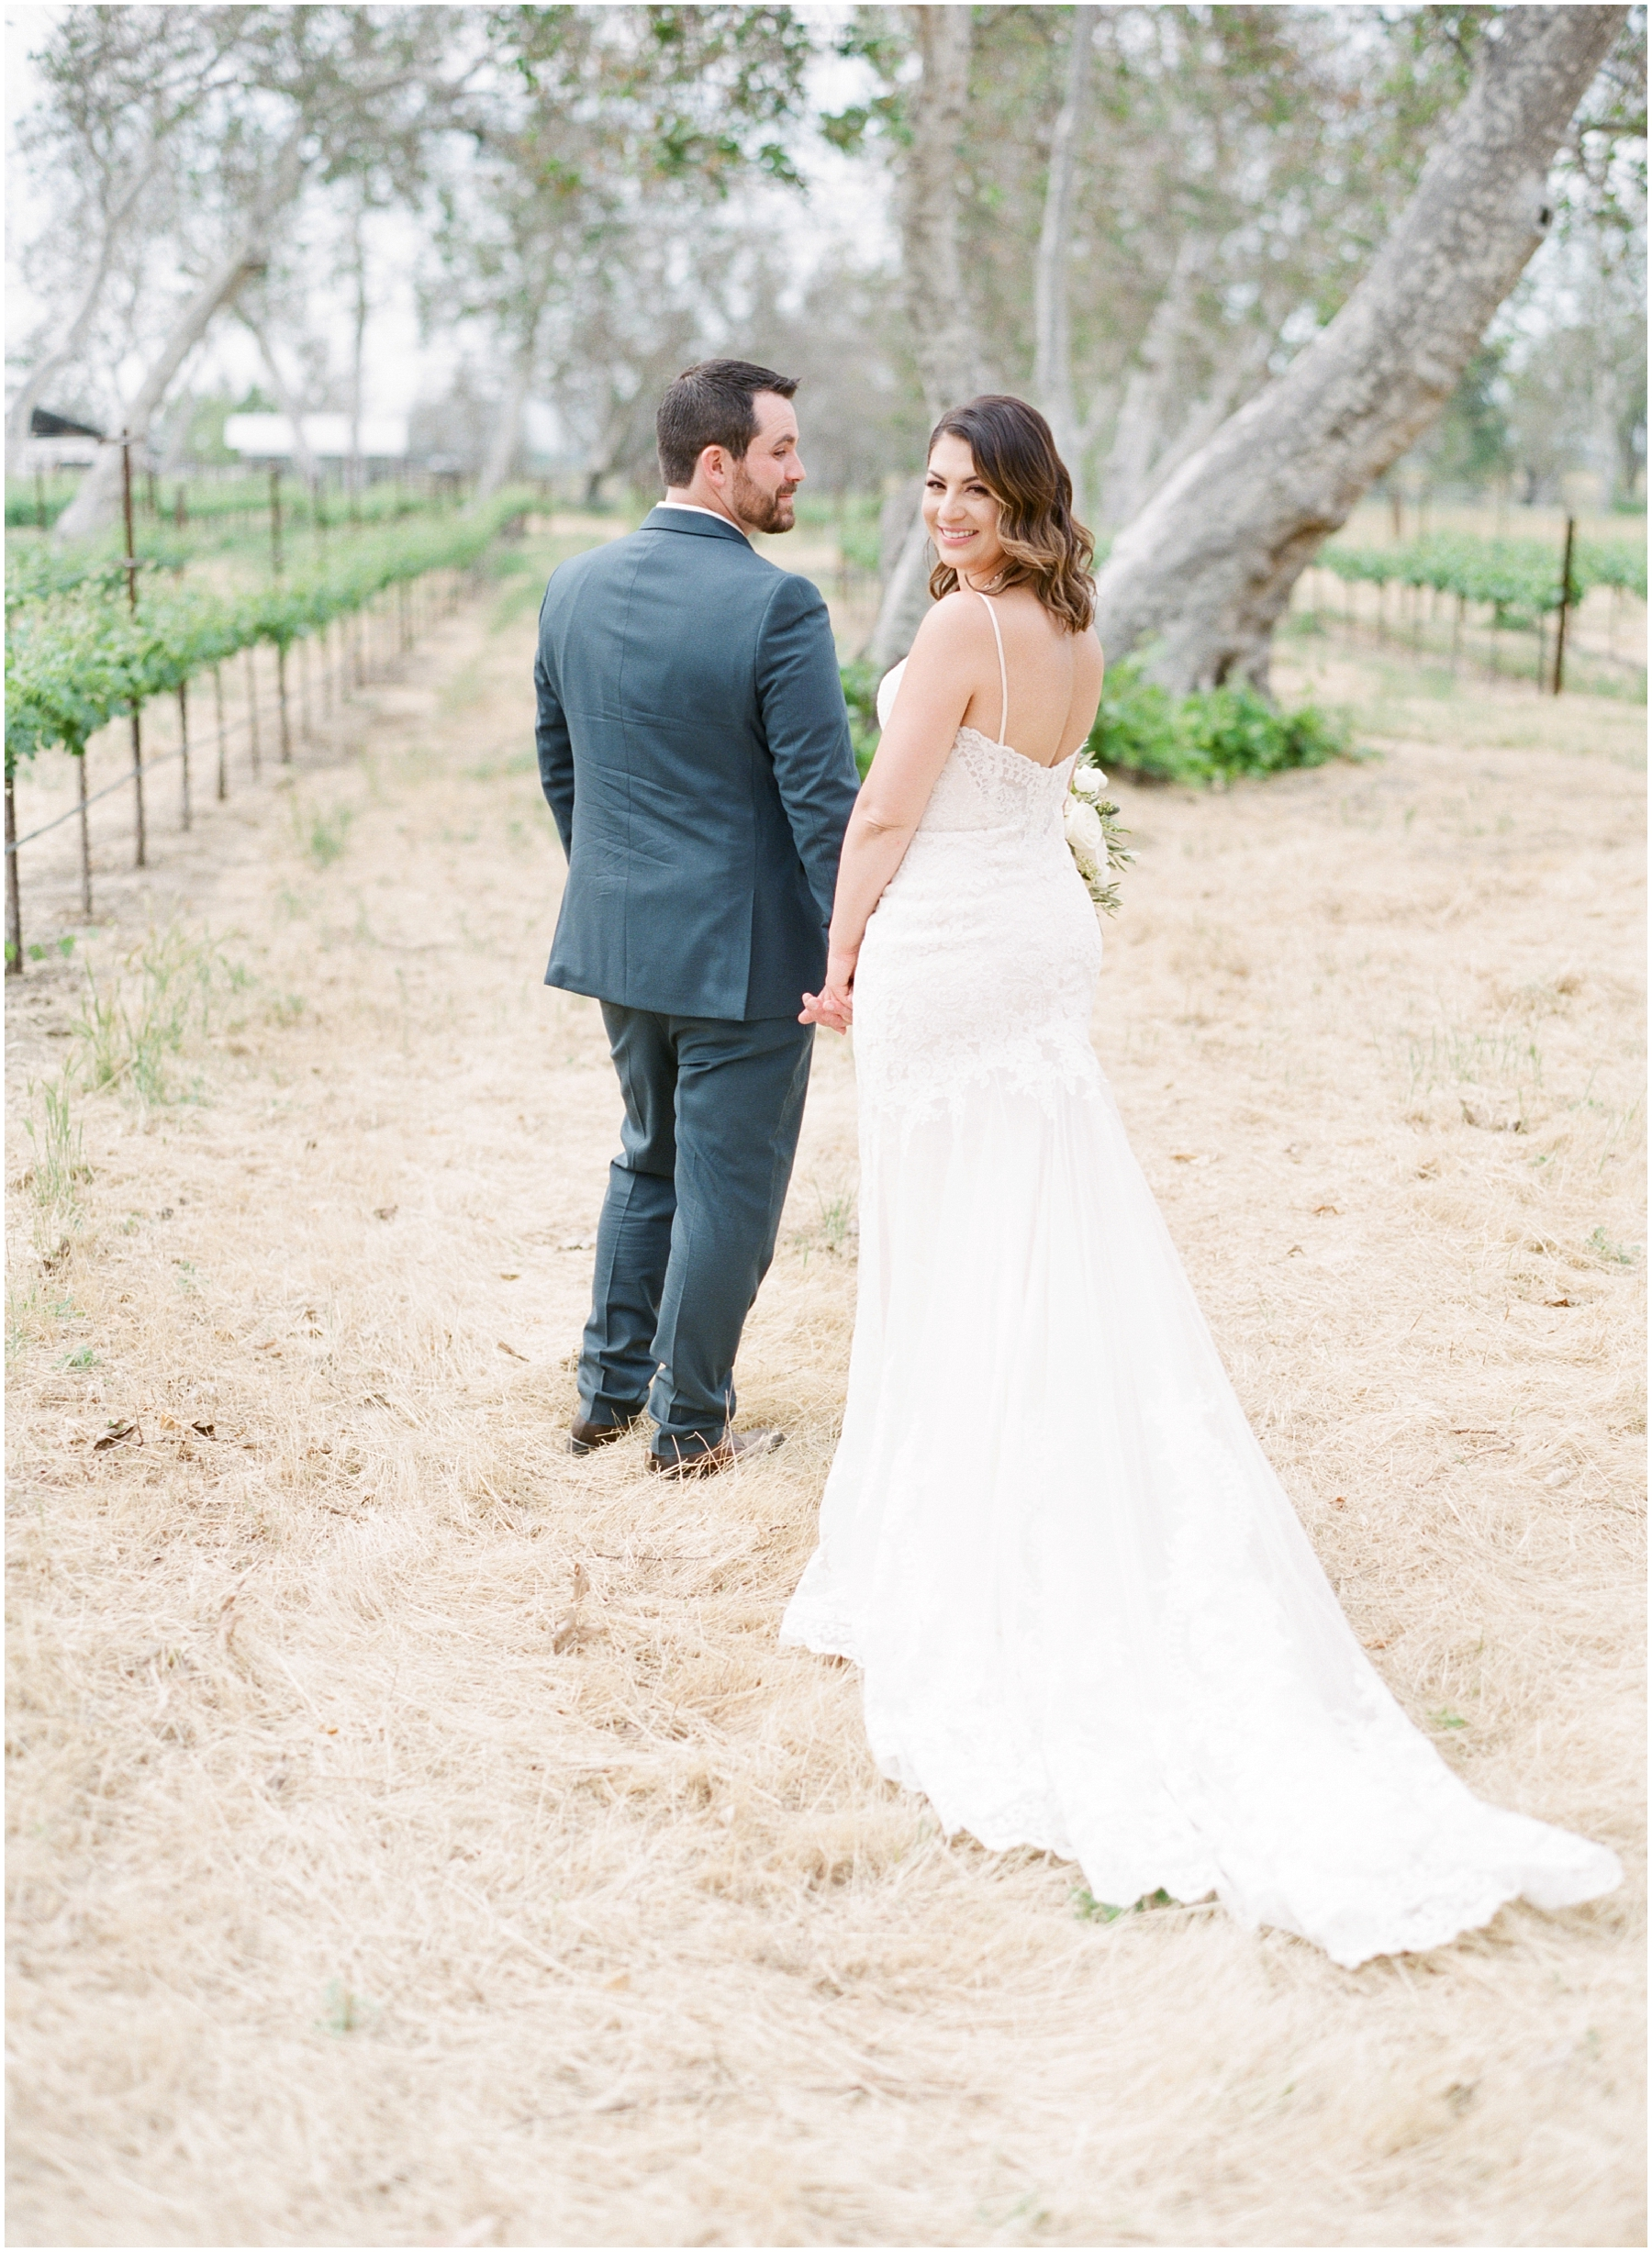 Muriettas-well-wedding-livemore-california-kristine-herman-photography-1-4.jpg